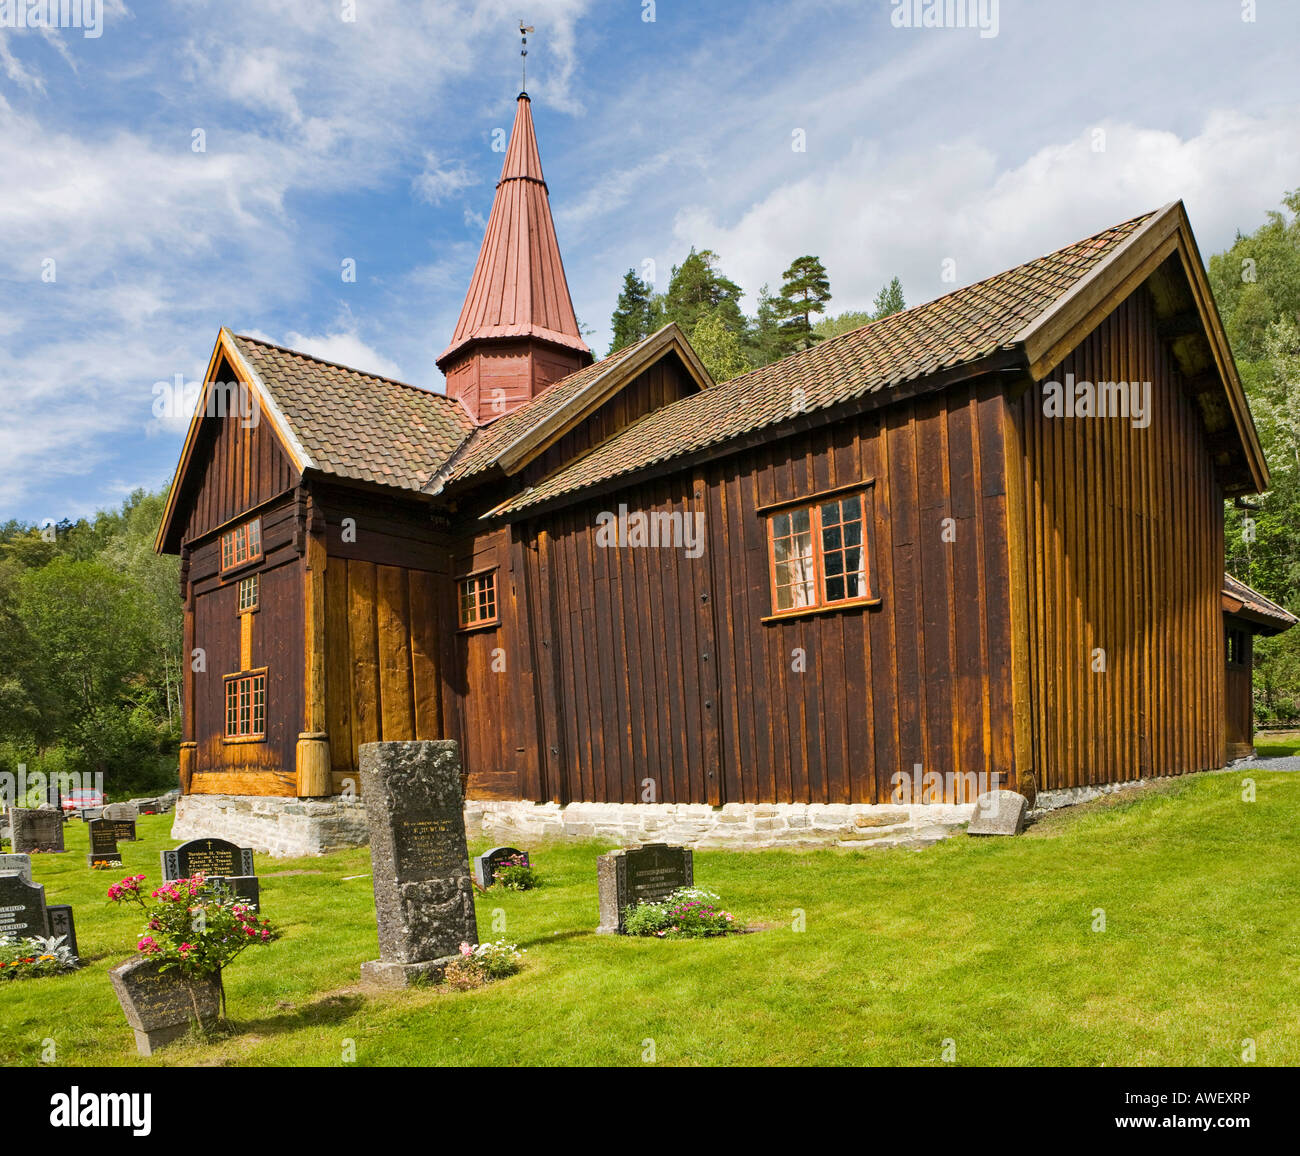 Thirteenth-century stave church in Rollag, Numedal, Norway, Scandinavia, Europe Stock Photo